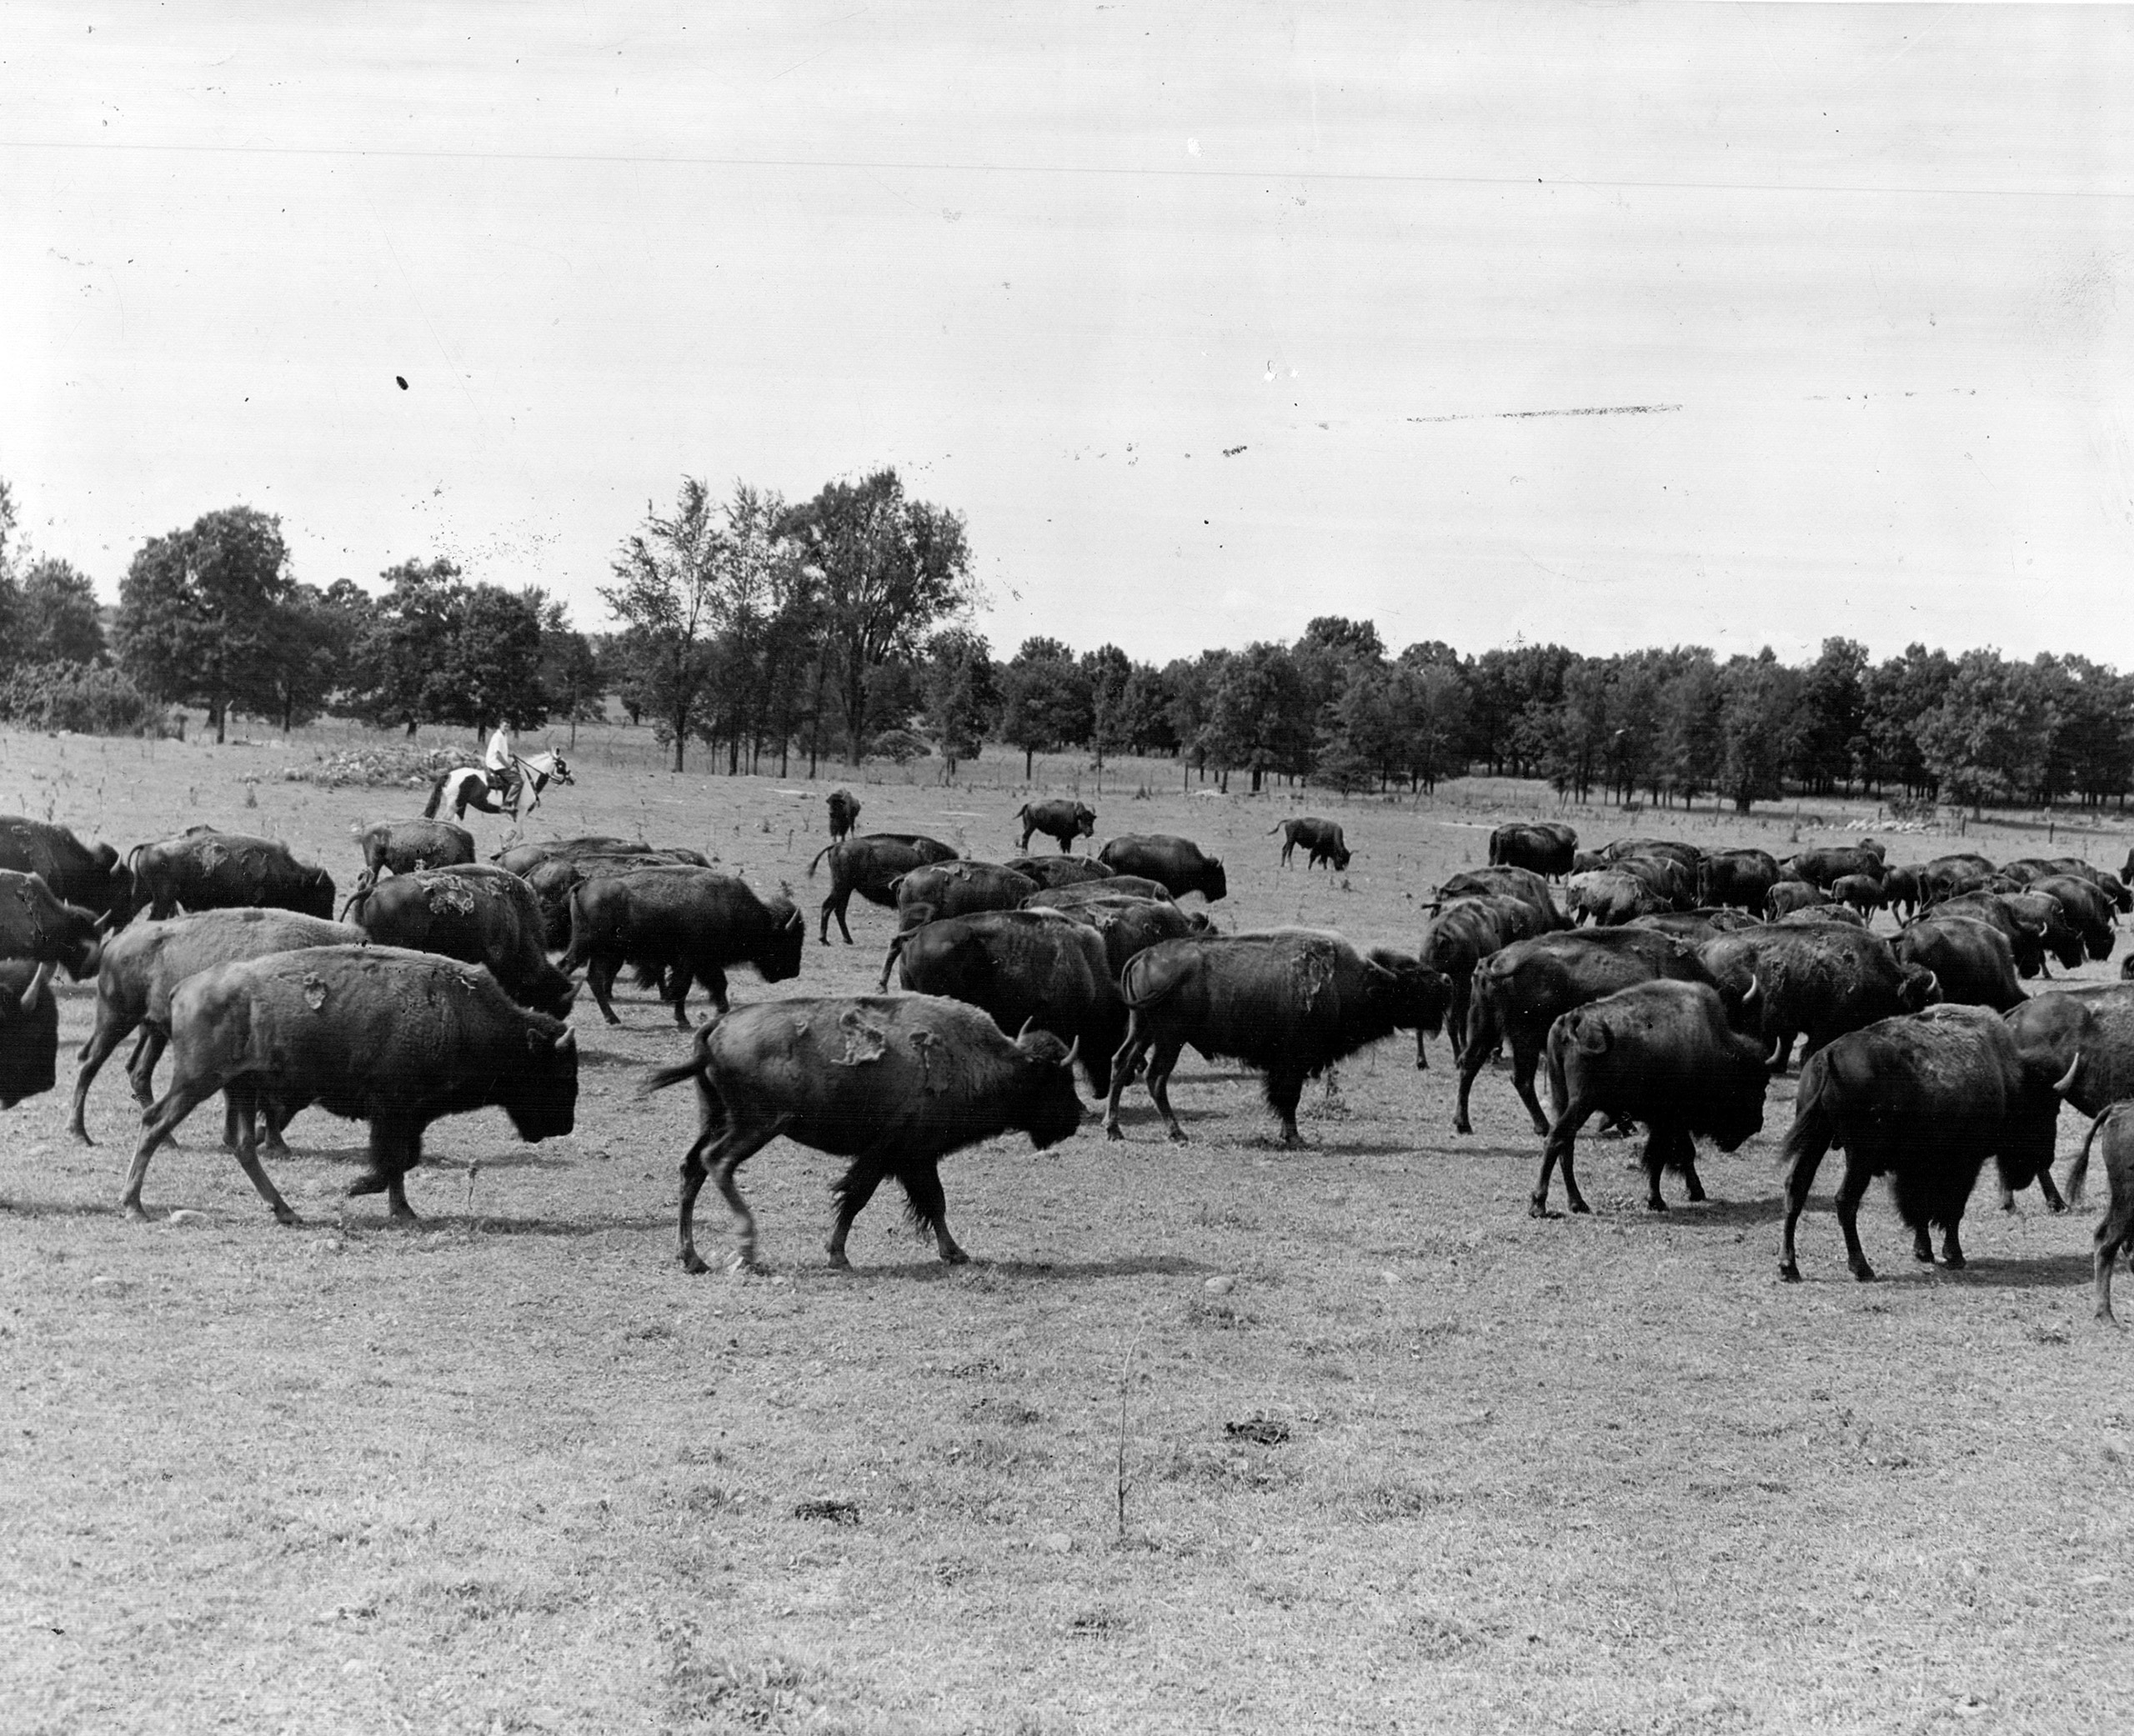 On a ranch in southern Michigan; there are several hundred wild bison snorting and pawing the ground and ready to toss all intruders. 1945.